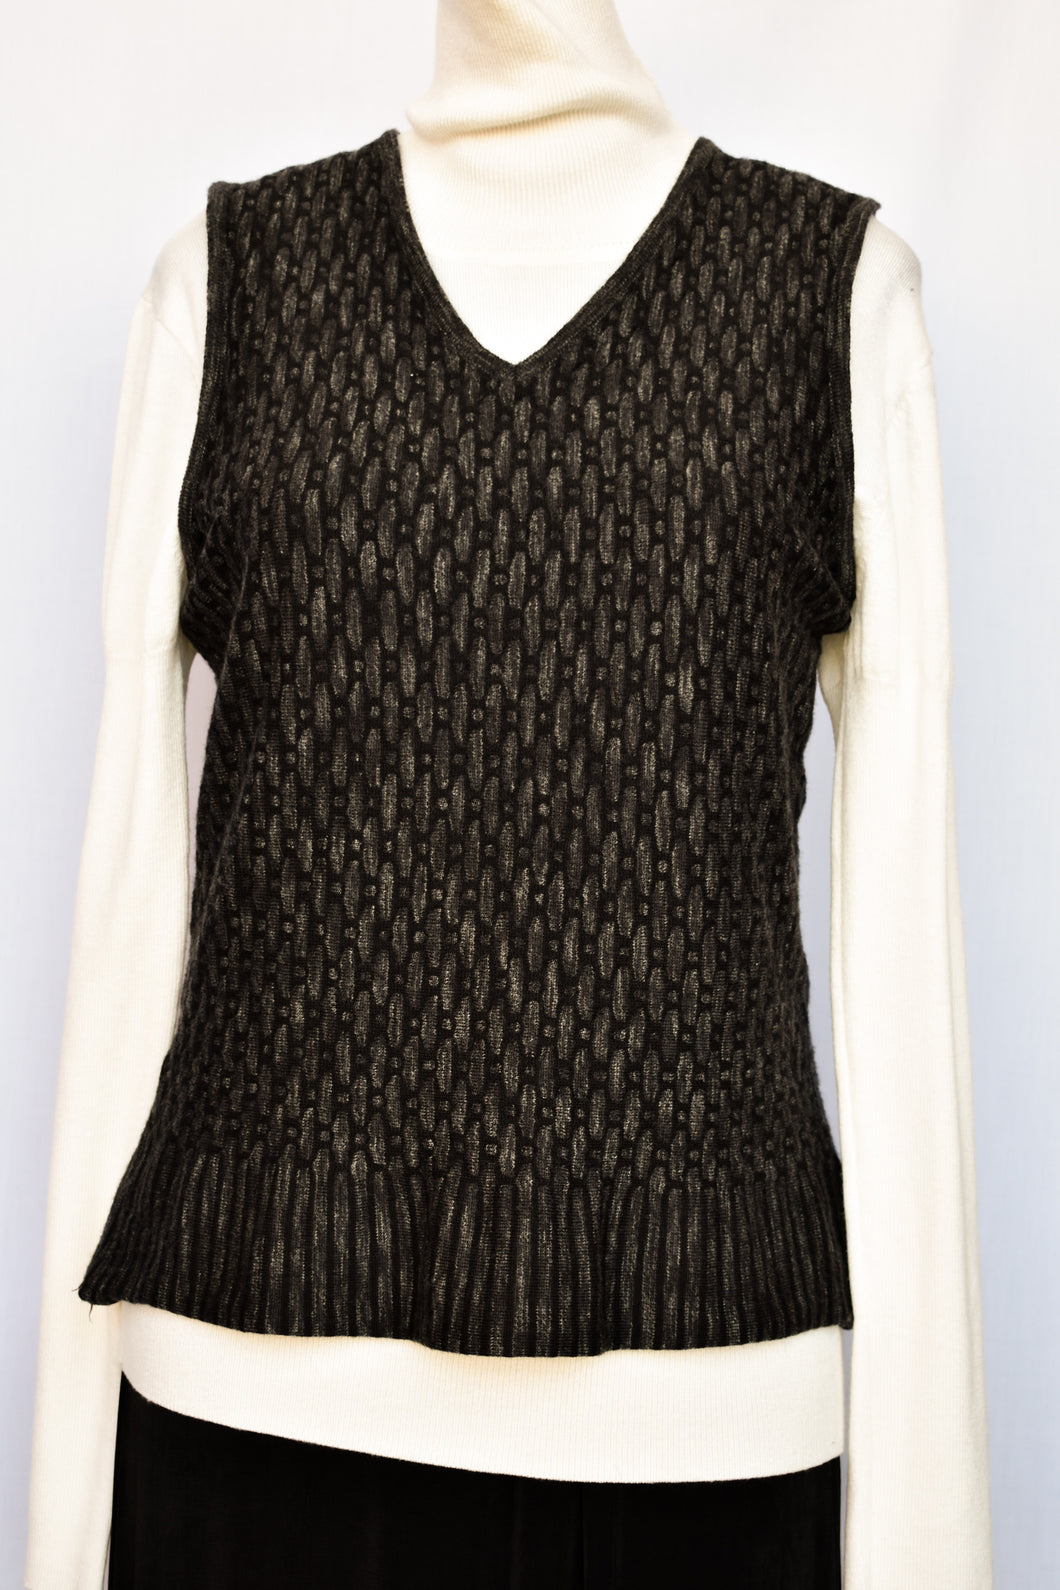 Sabatini pure wool lightweight vest, size M